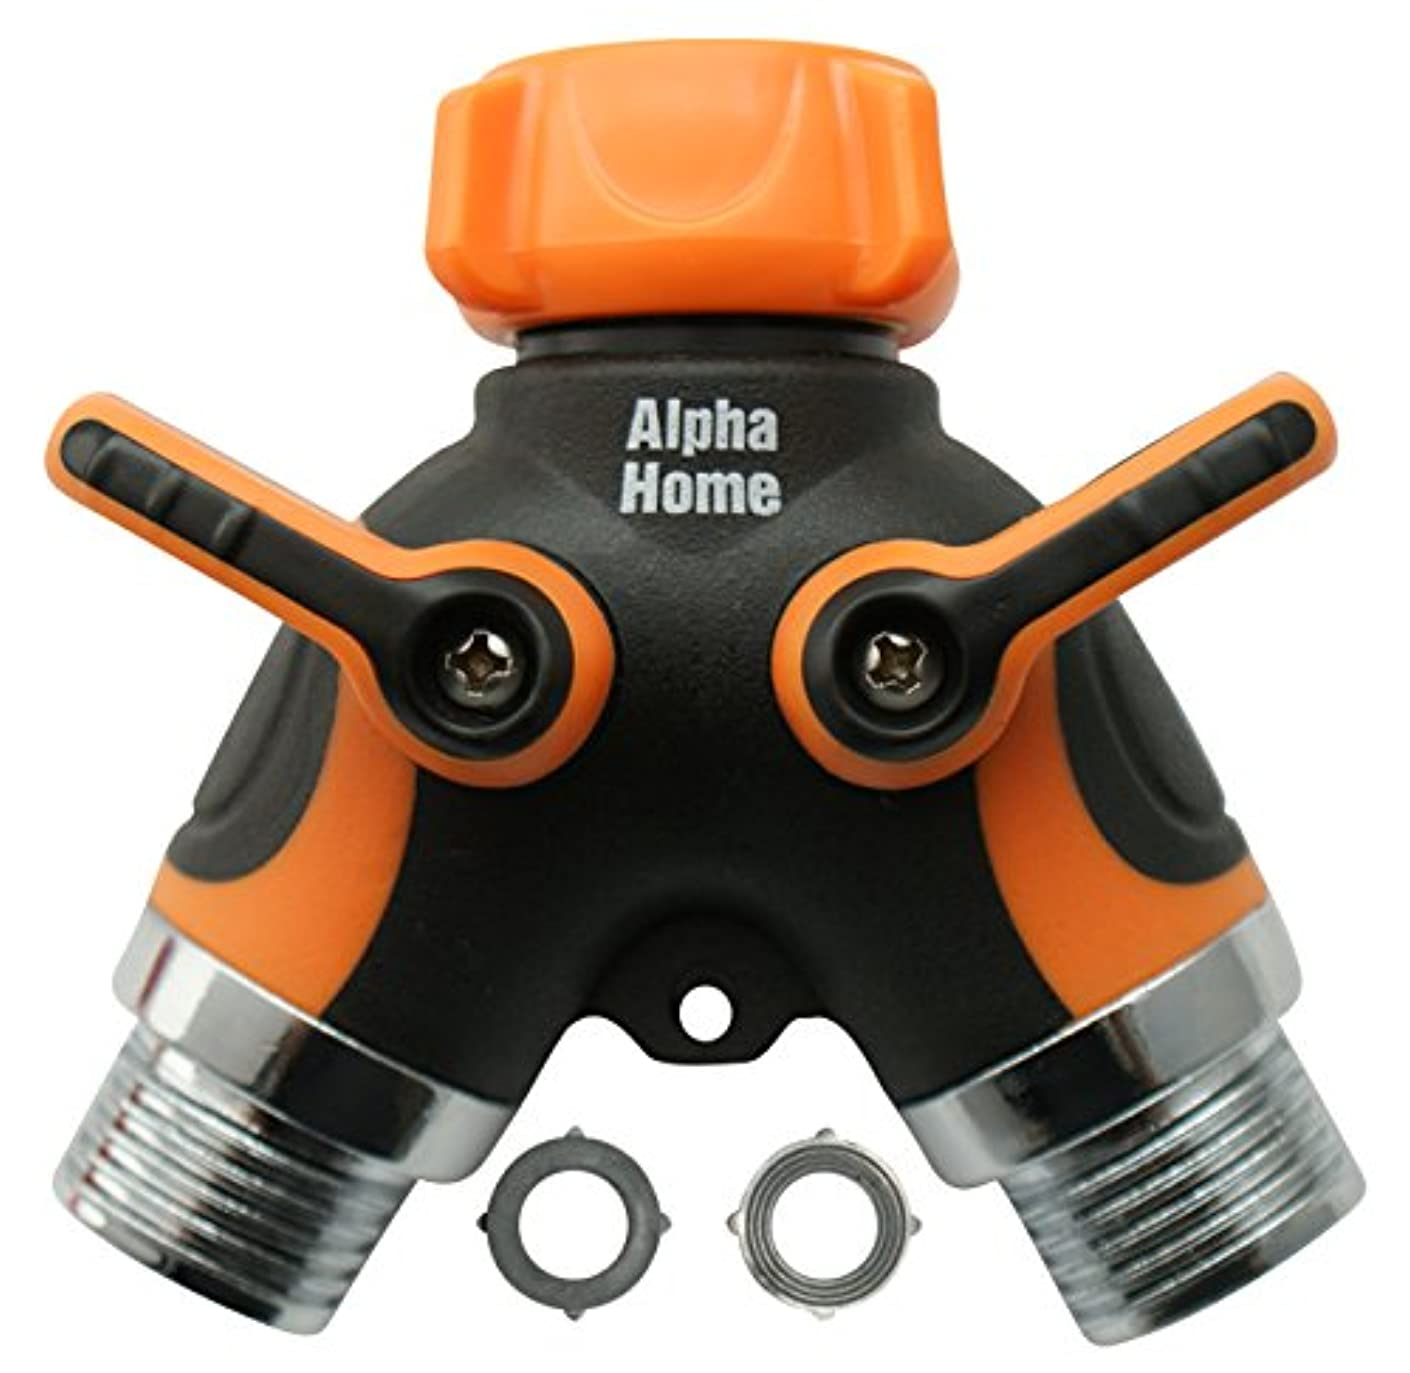 AHP 2-Way Garden Hose Connector Y Valve Splitter with Arthritis friendly Comfort Grip and 2 (+1) Rubber Washers - Fits Outdoor Faucets, Sprinkler & Drip Irrigation Systems